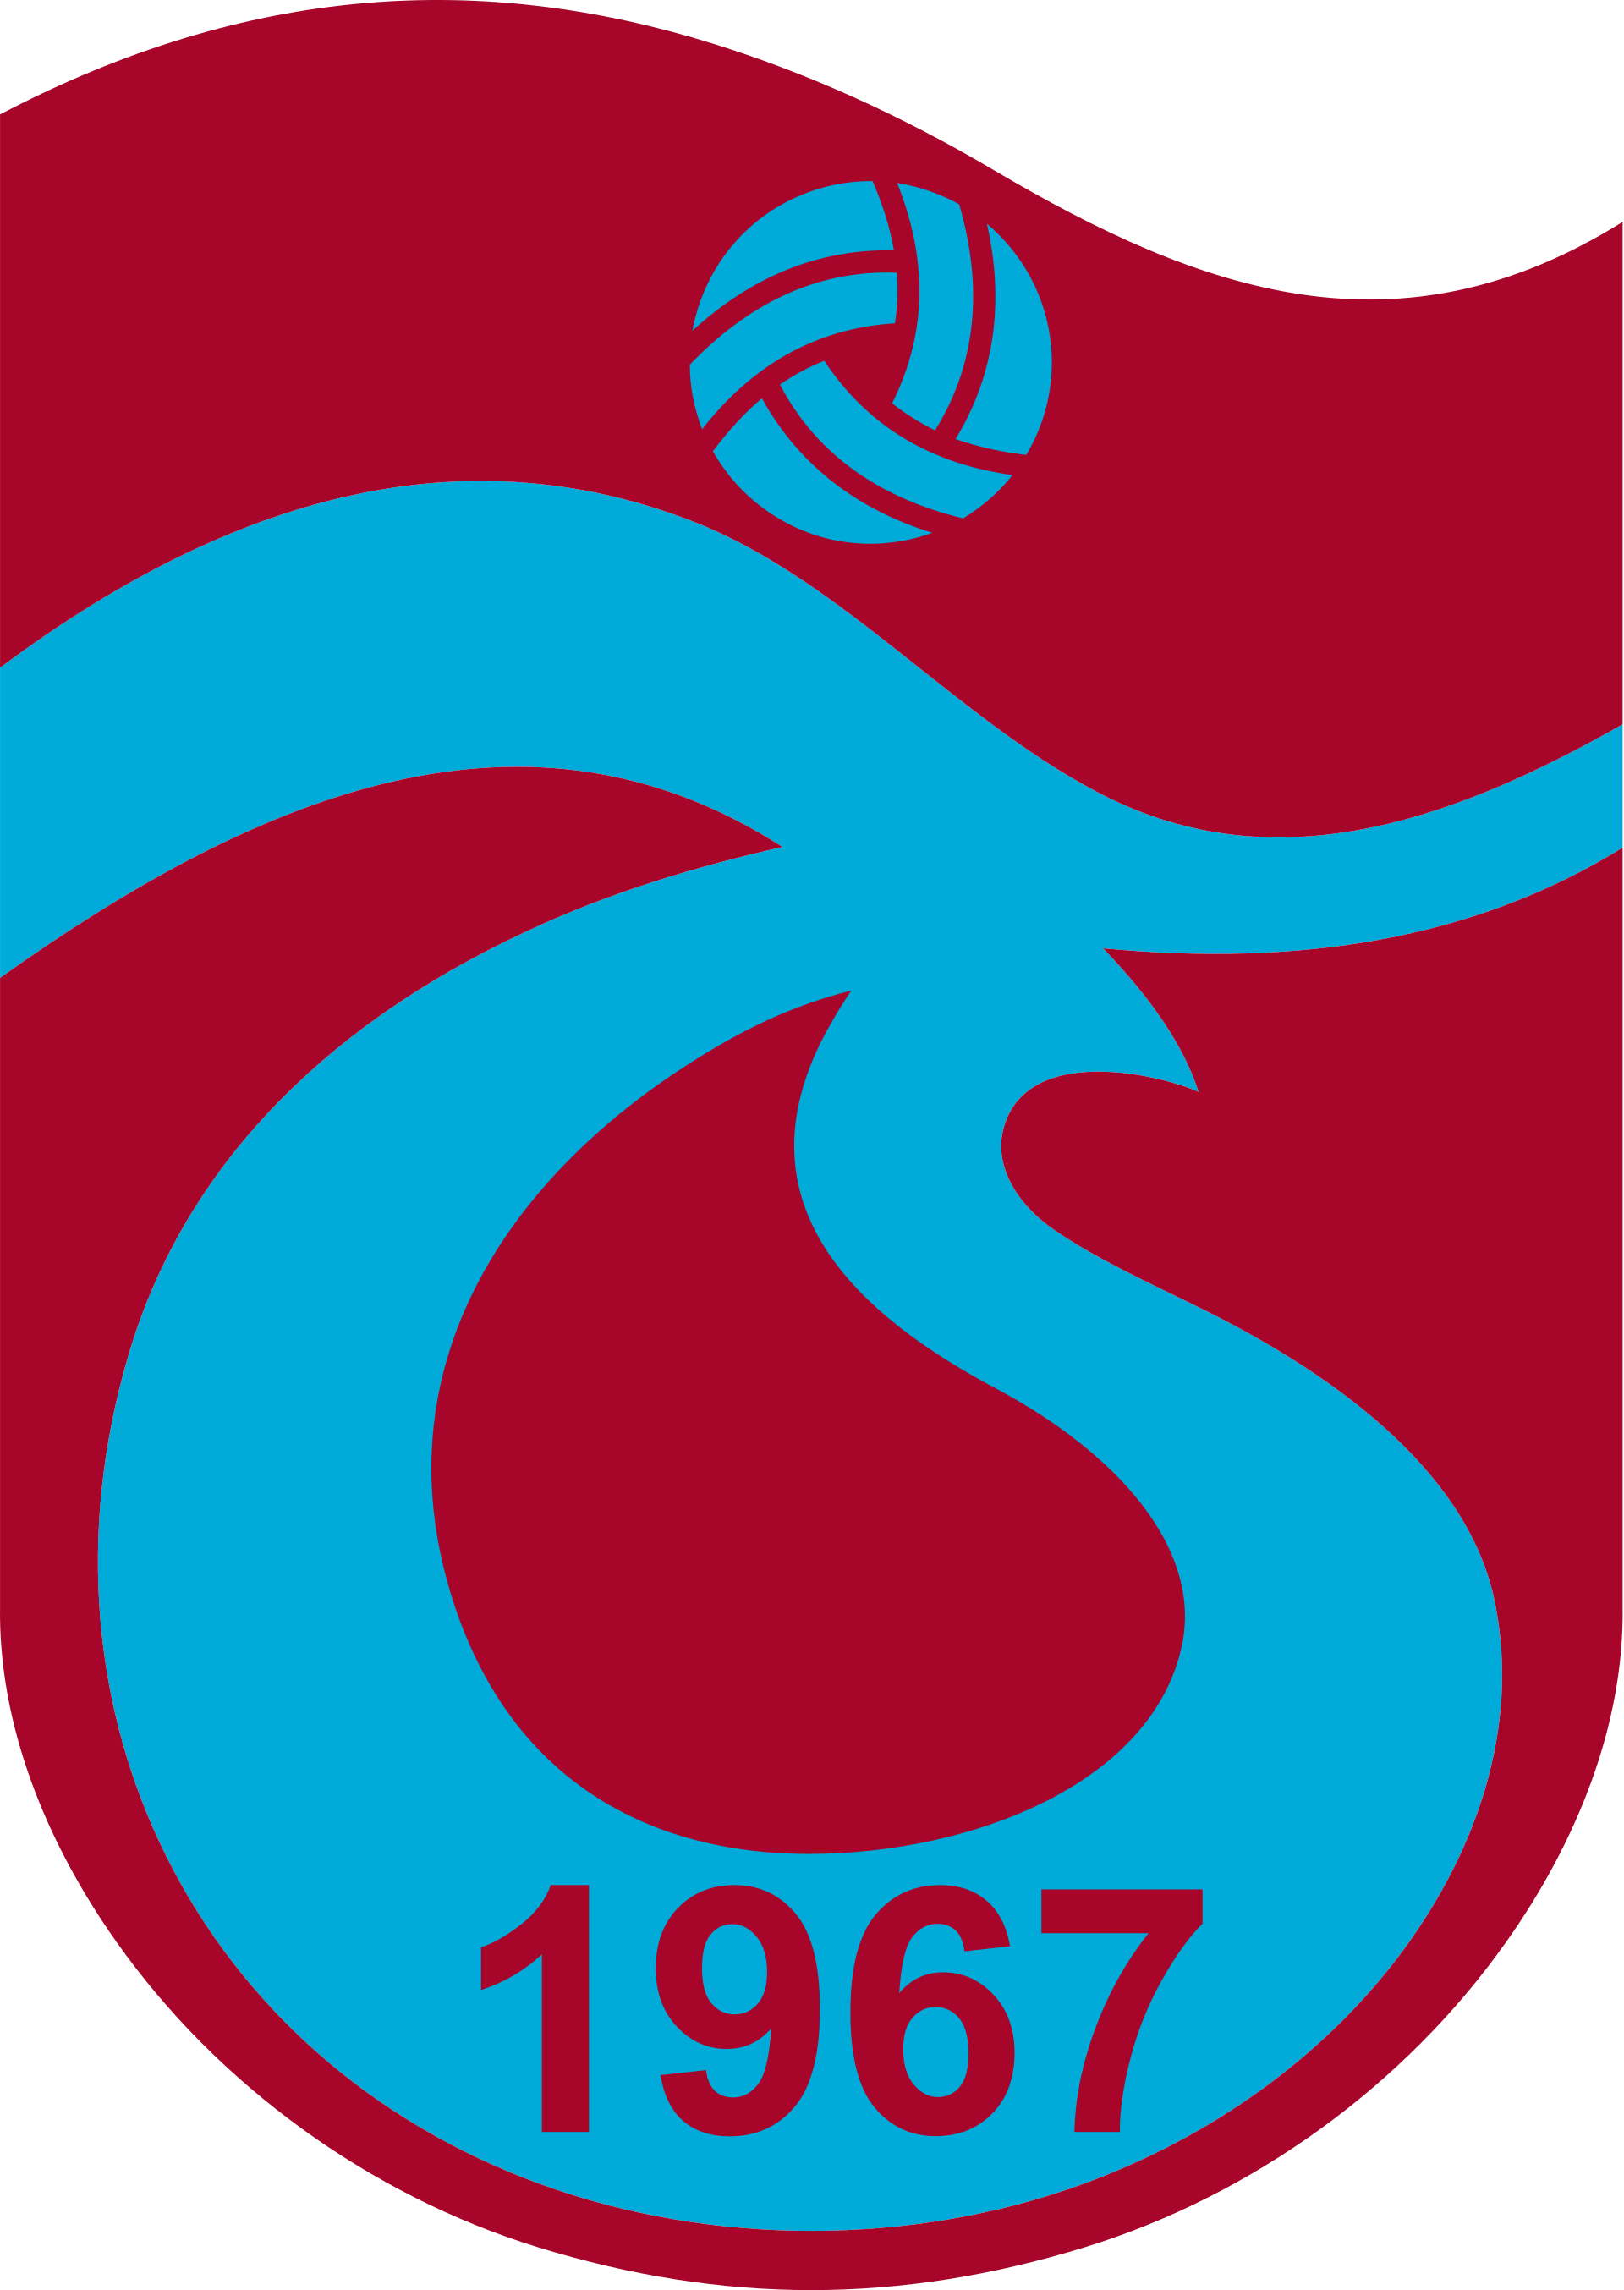 1967 trabzonspor transparent logo #40902